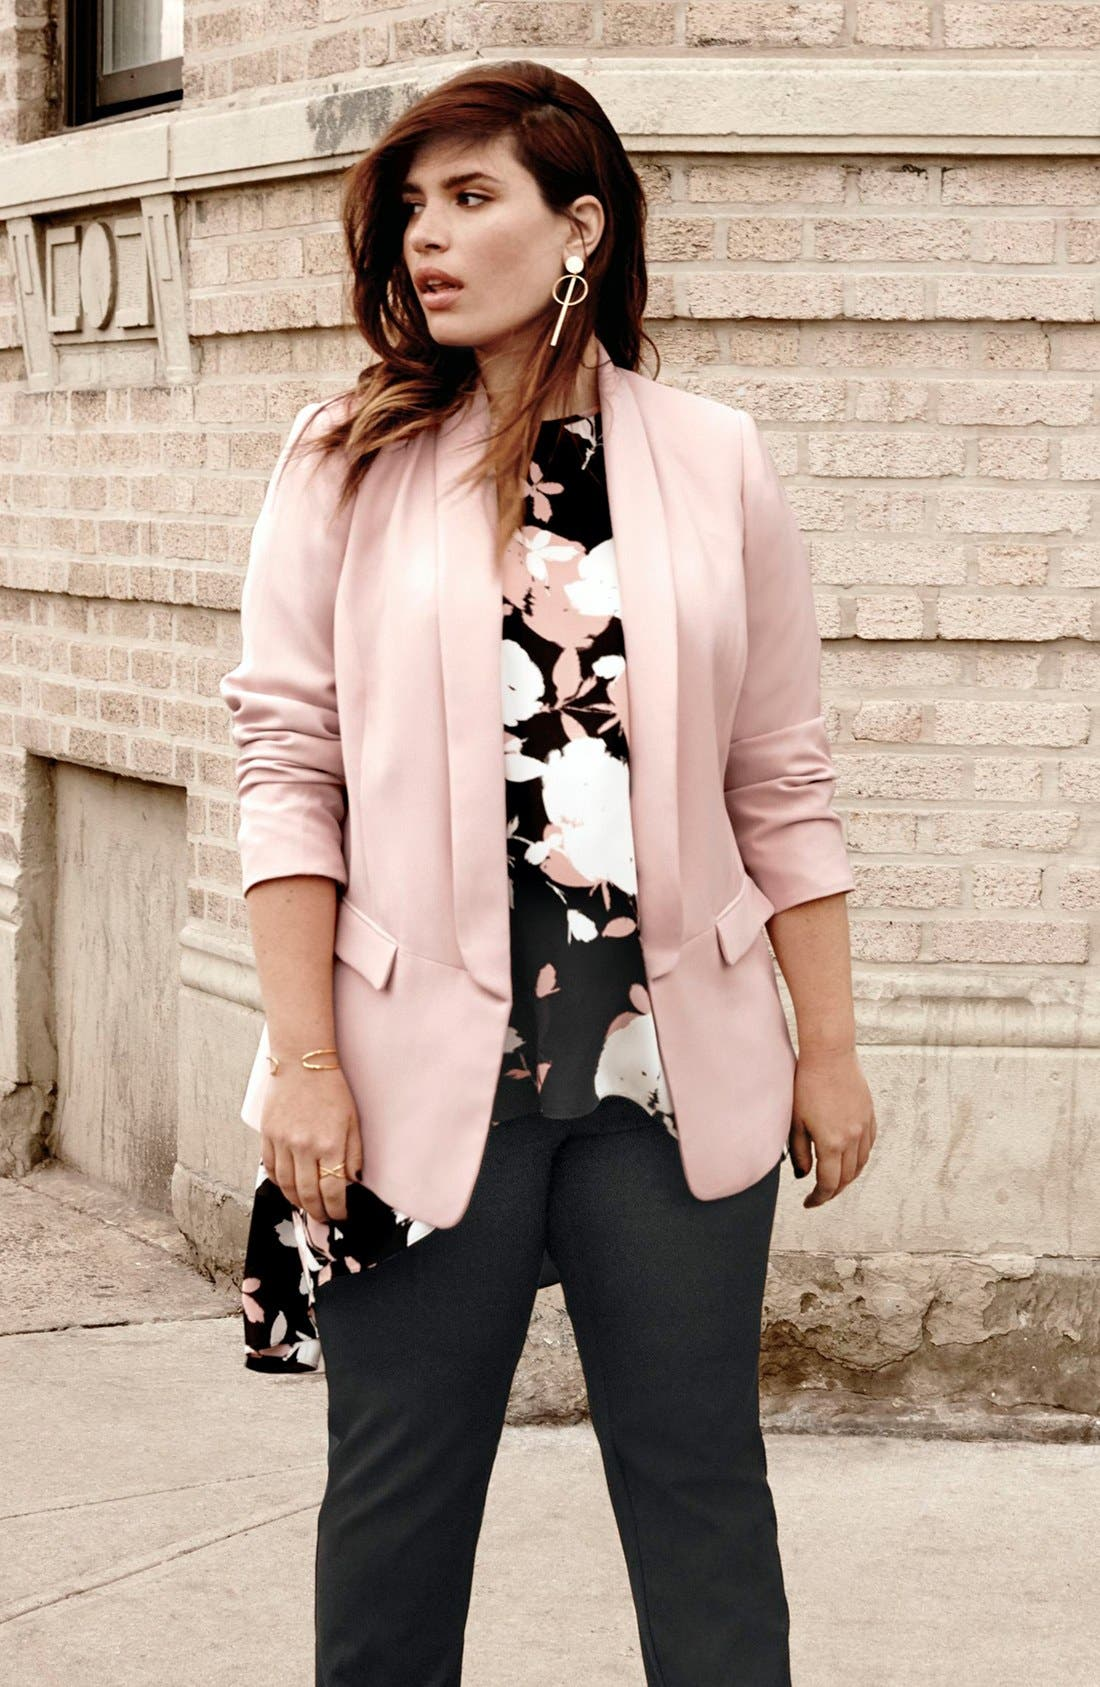 Vince Camuto Blazer, Blouse & Pants Outfit with Accessories (Plus Size)